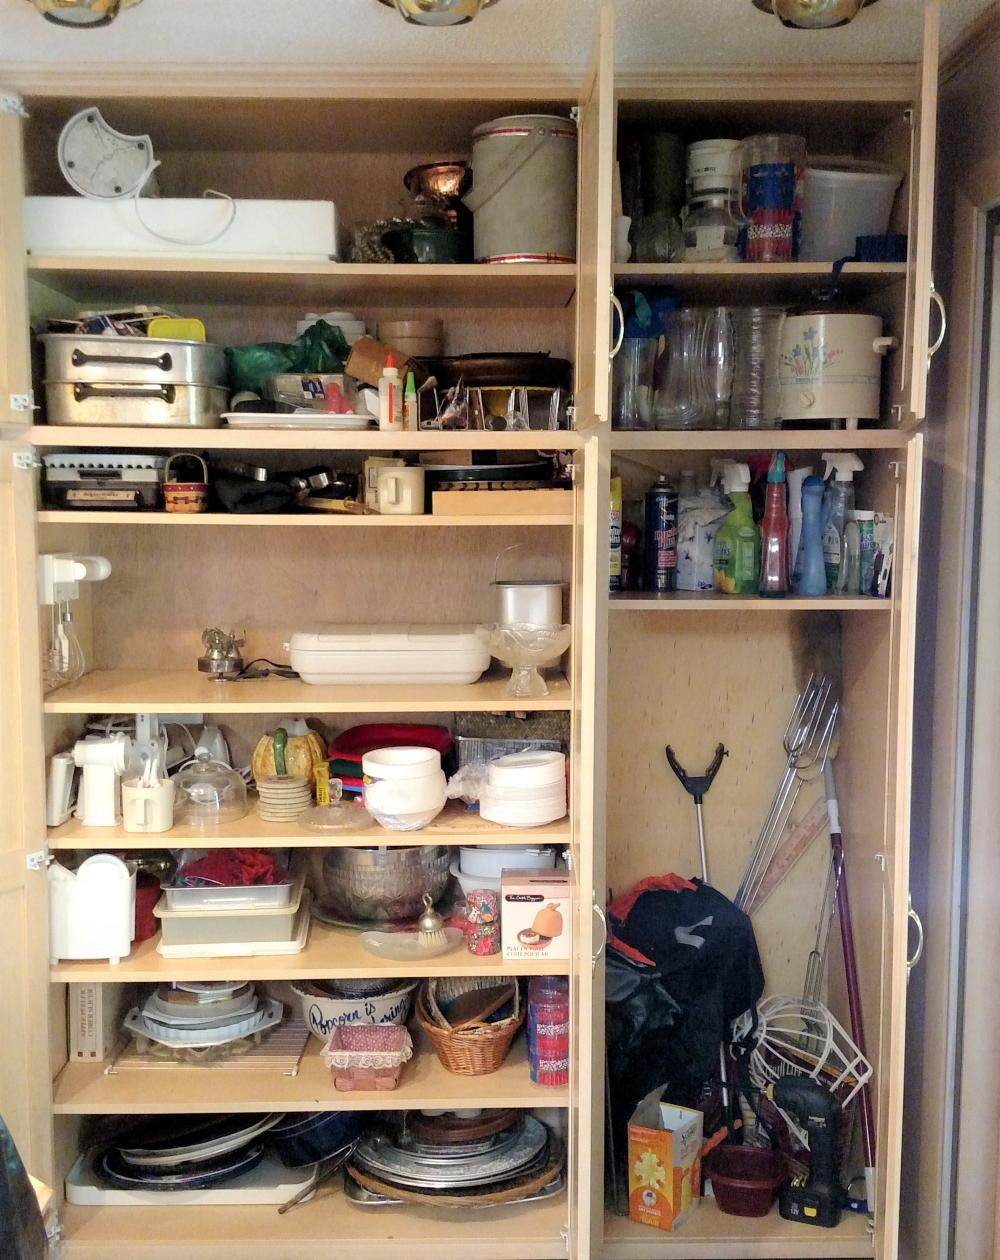 pantry contents-- trays, cleaning products, crock pots, hot dog forks, vases, misc housewares,